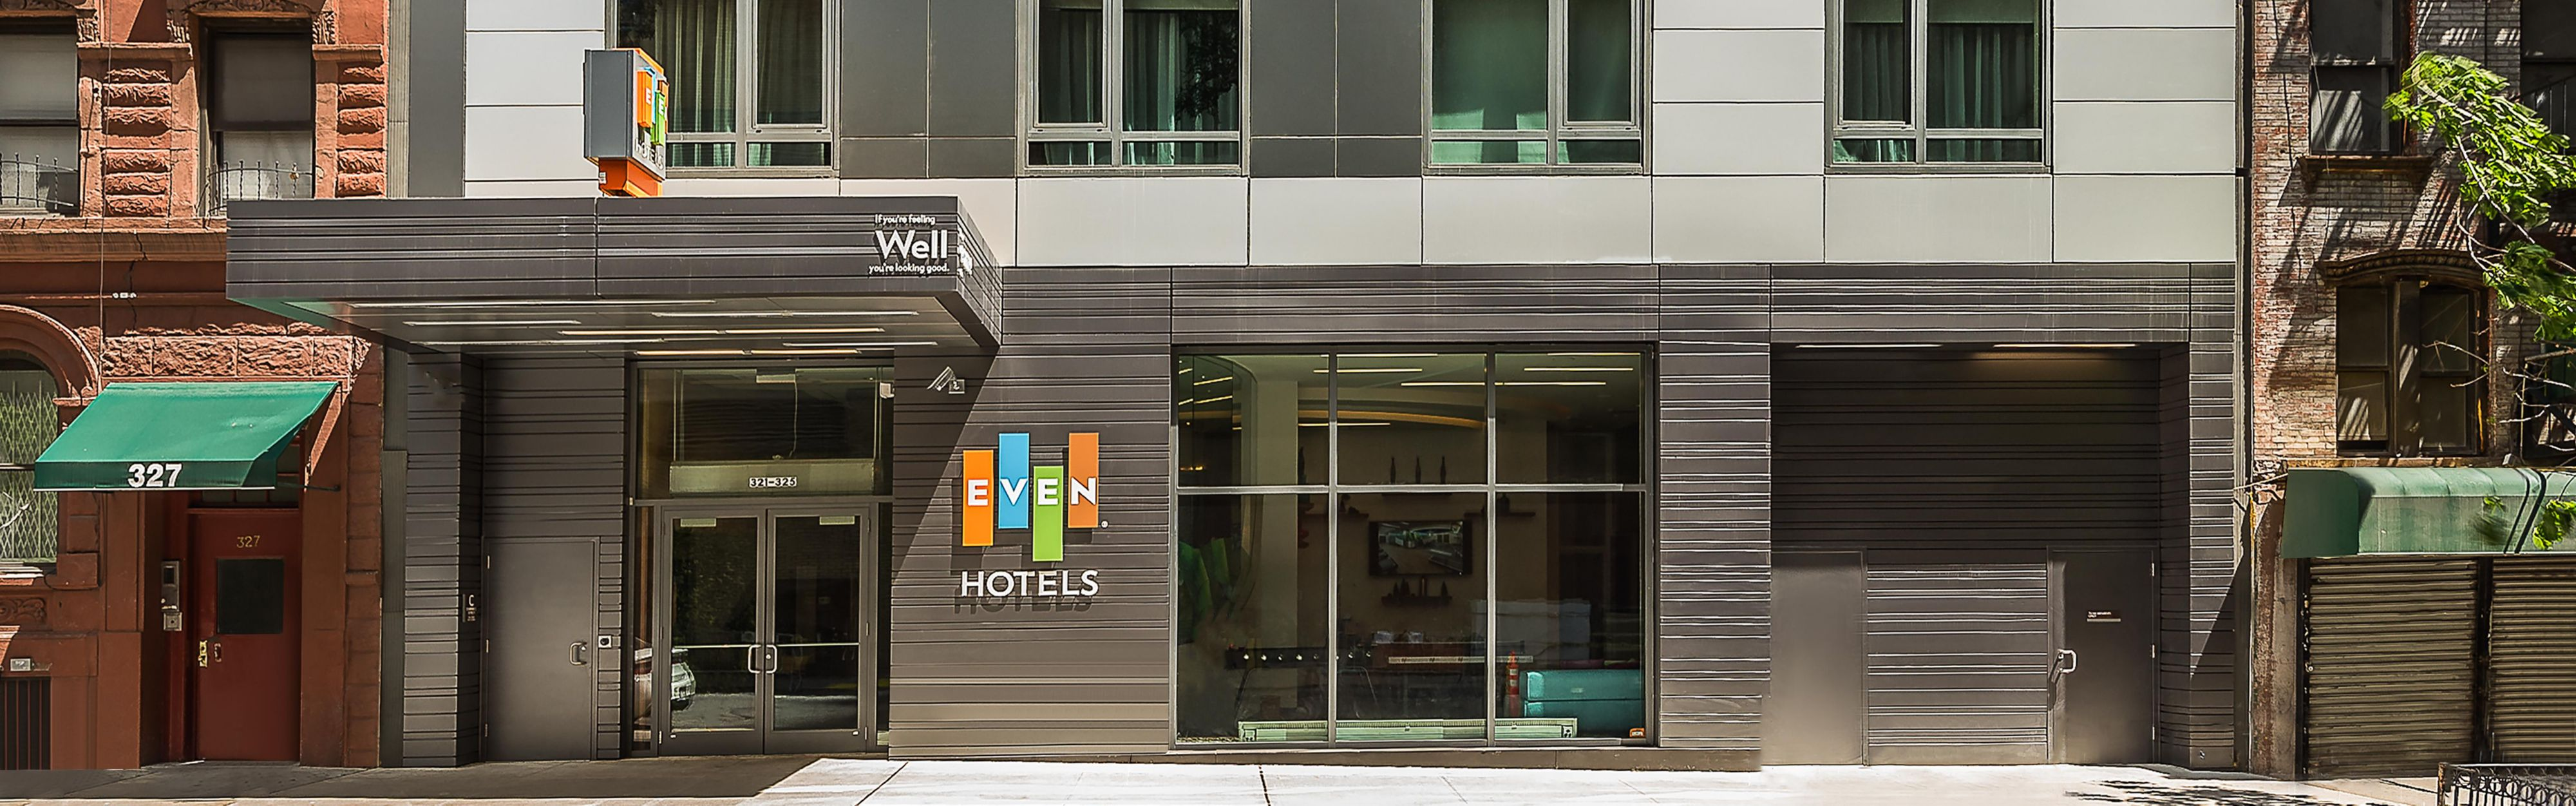 Best Hotels Outside Nyc With